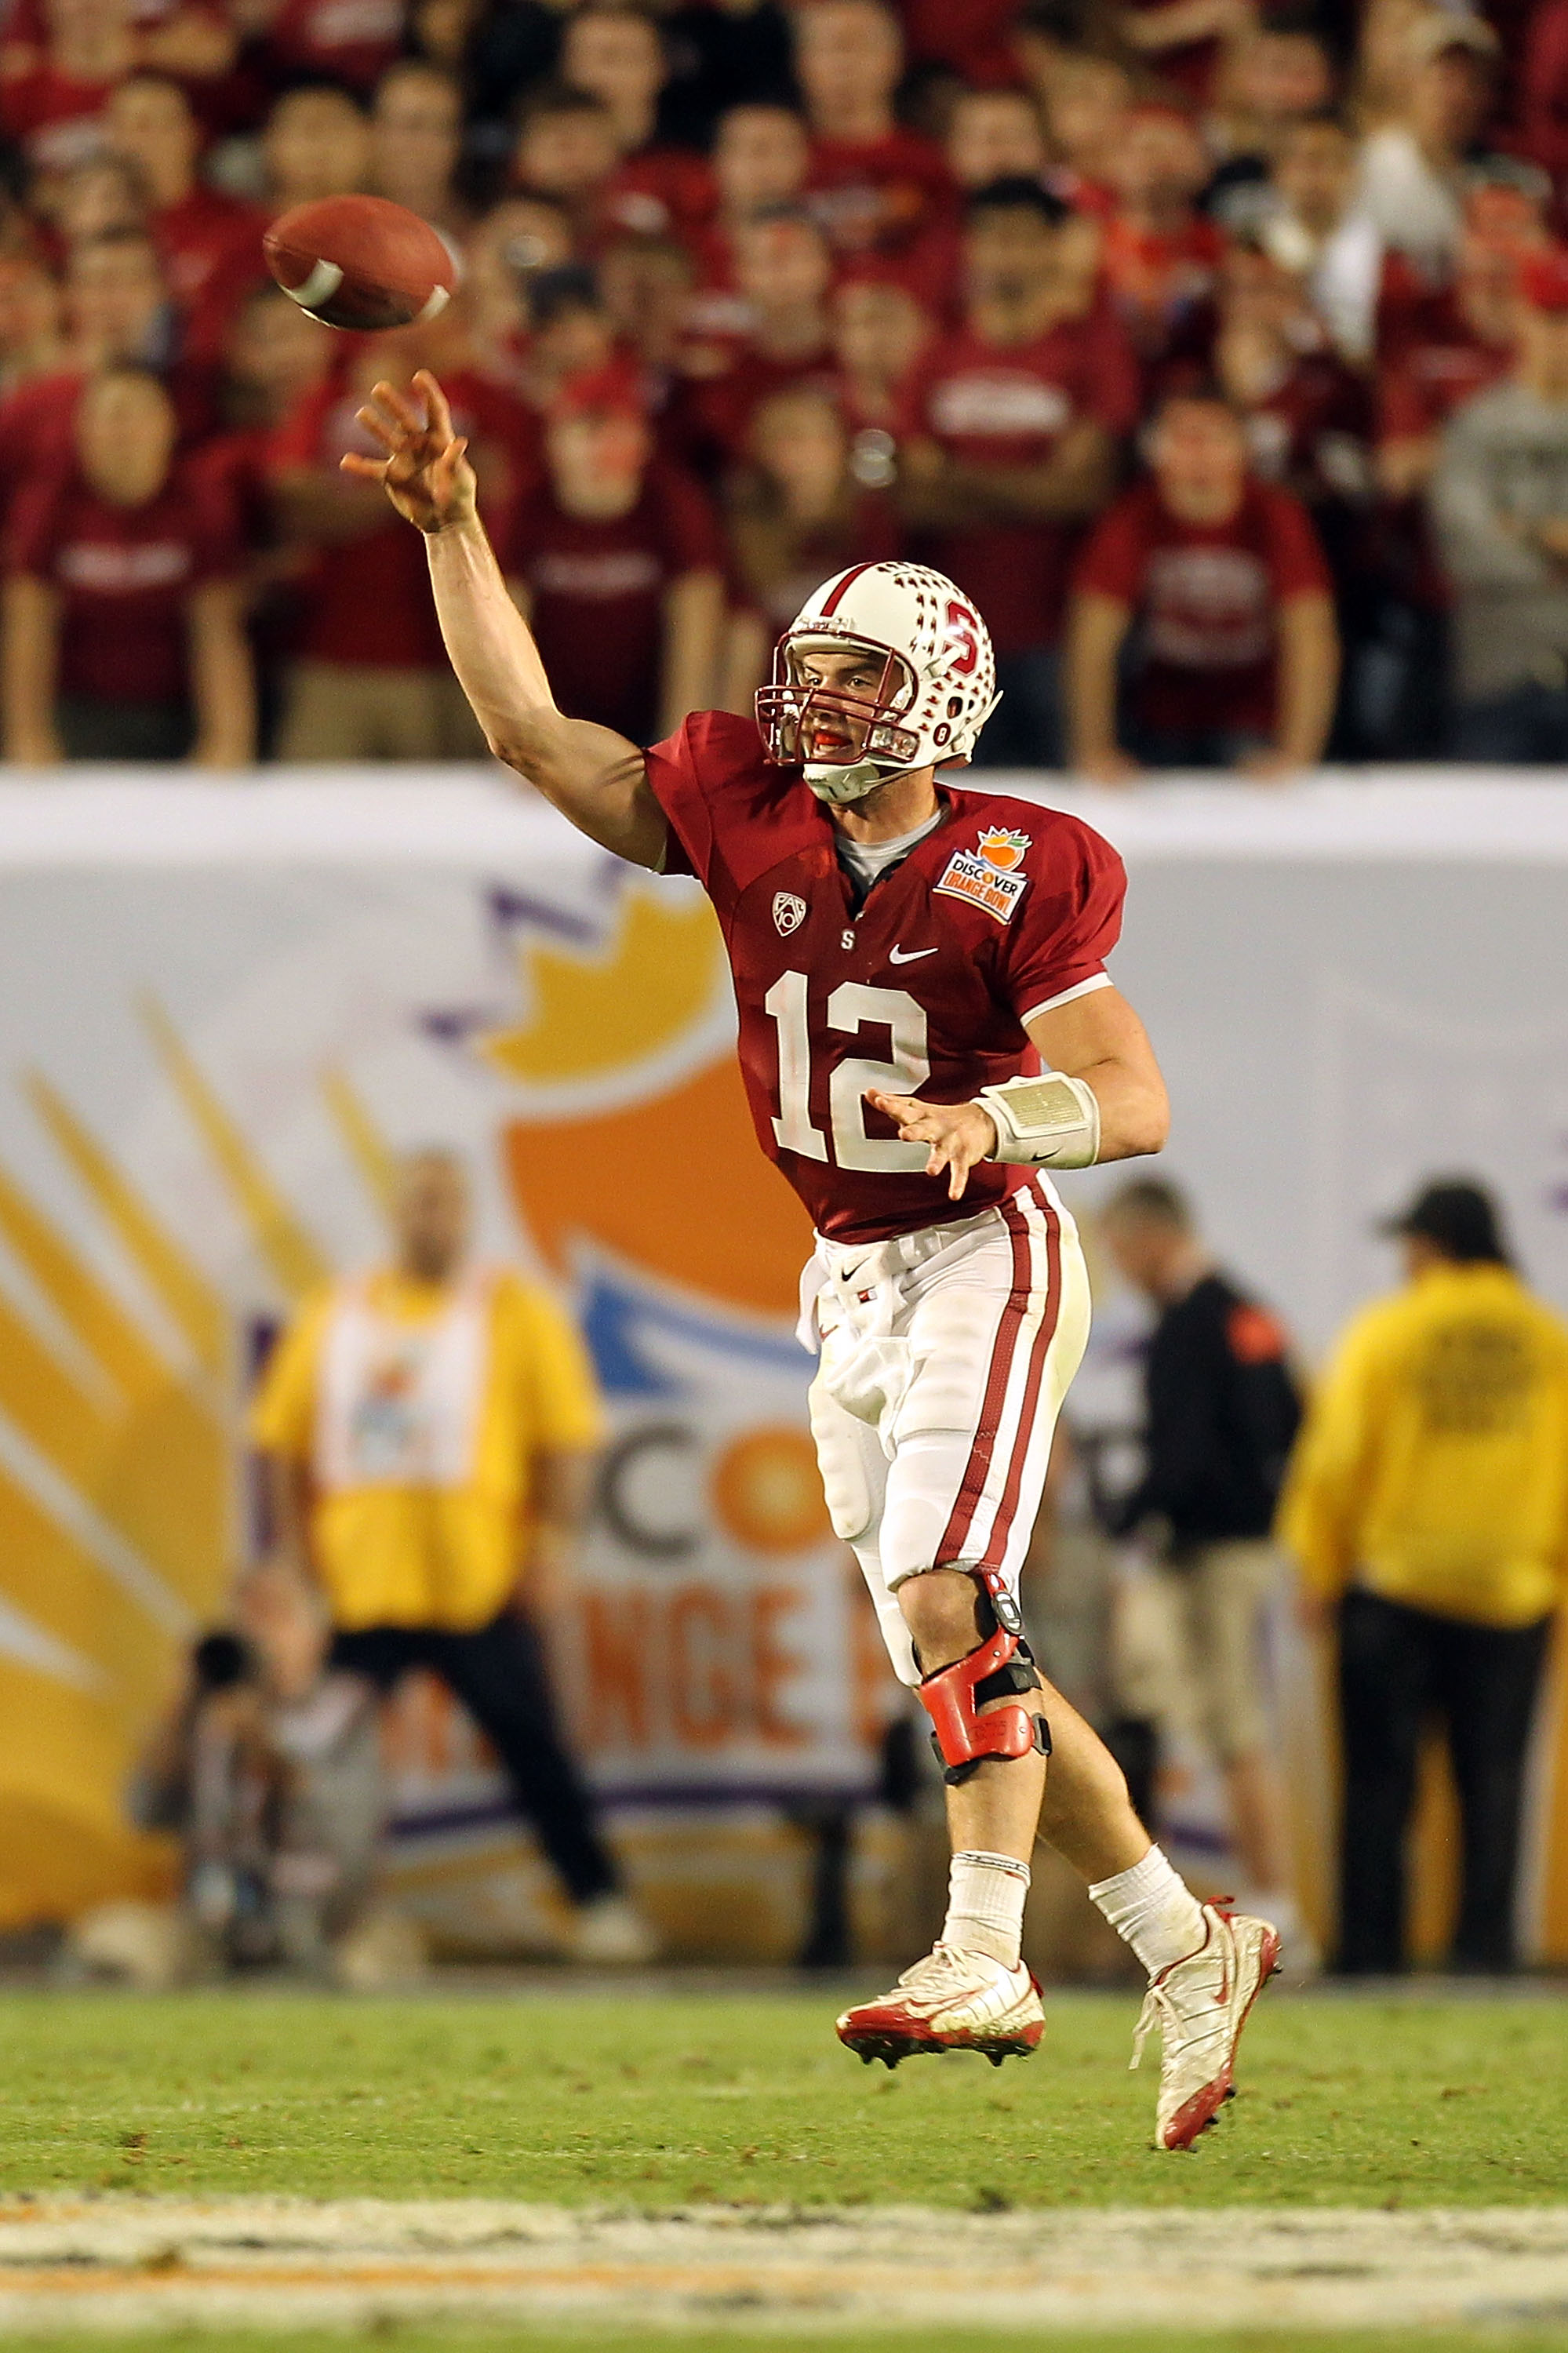 MIAMI, FL - JANUARY 03:  Quarterback Andrew Luck of the Stanford Cardinal a 58-yard touchdown to COby FLeener #82 in the fourth quarter against the Virginia Tech Hokies during the 2011 Discover Orange Bowl at Sun Life Stadium on January 3, 2011 in Miami,